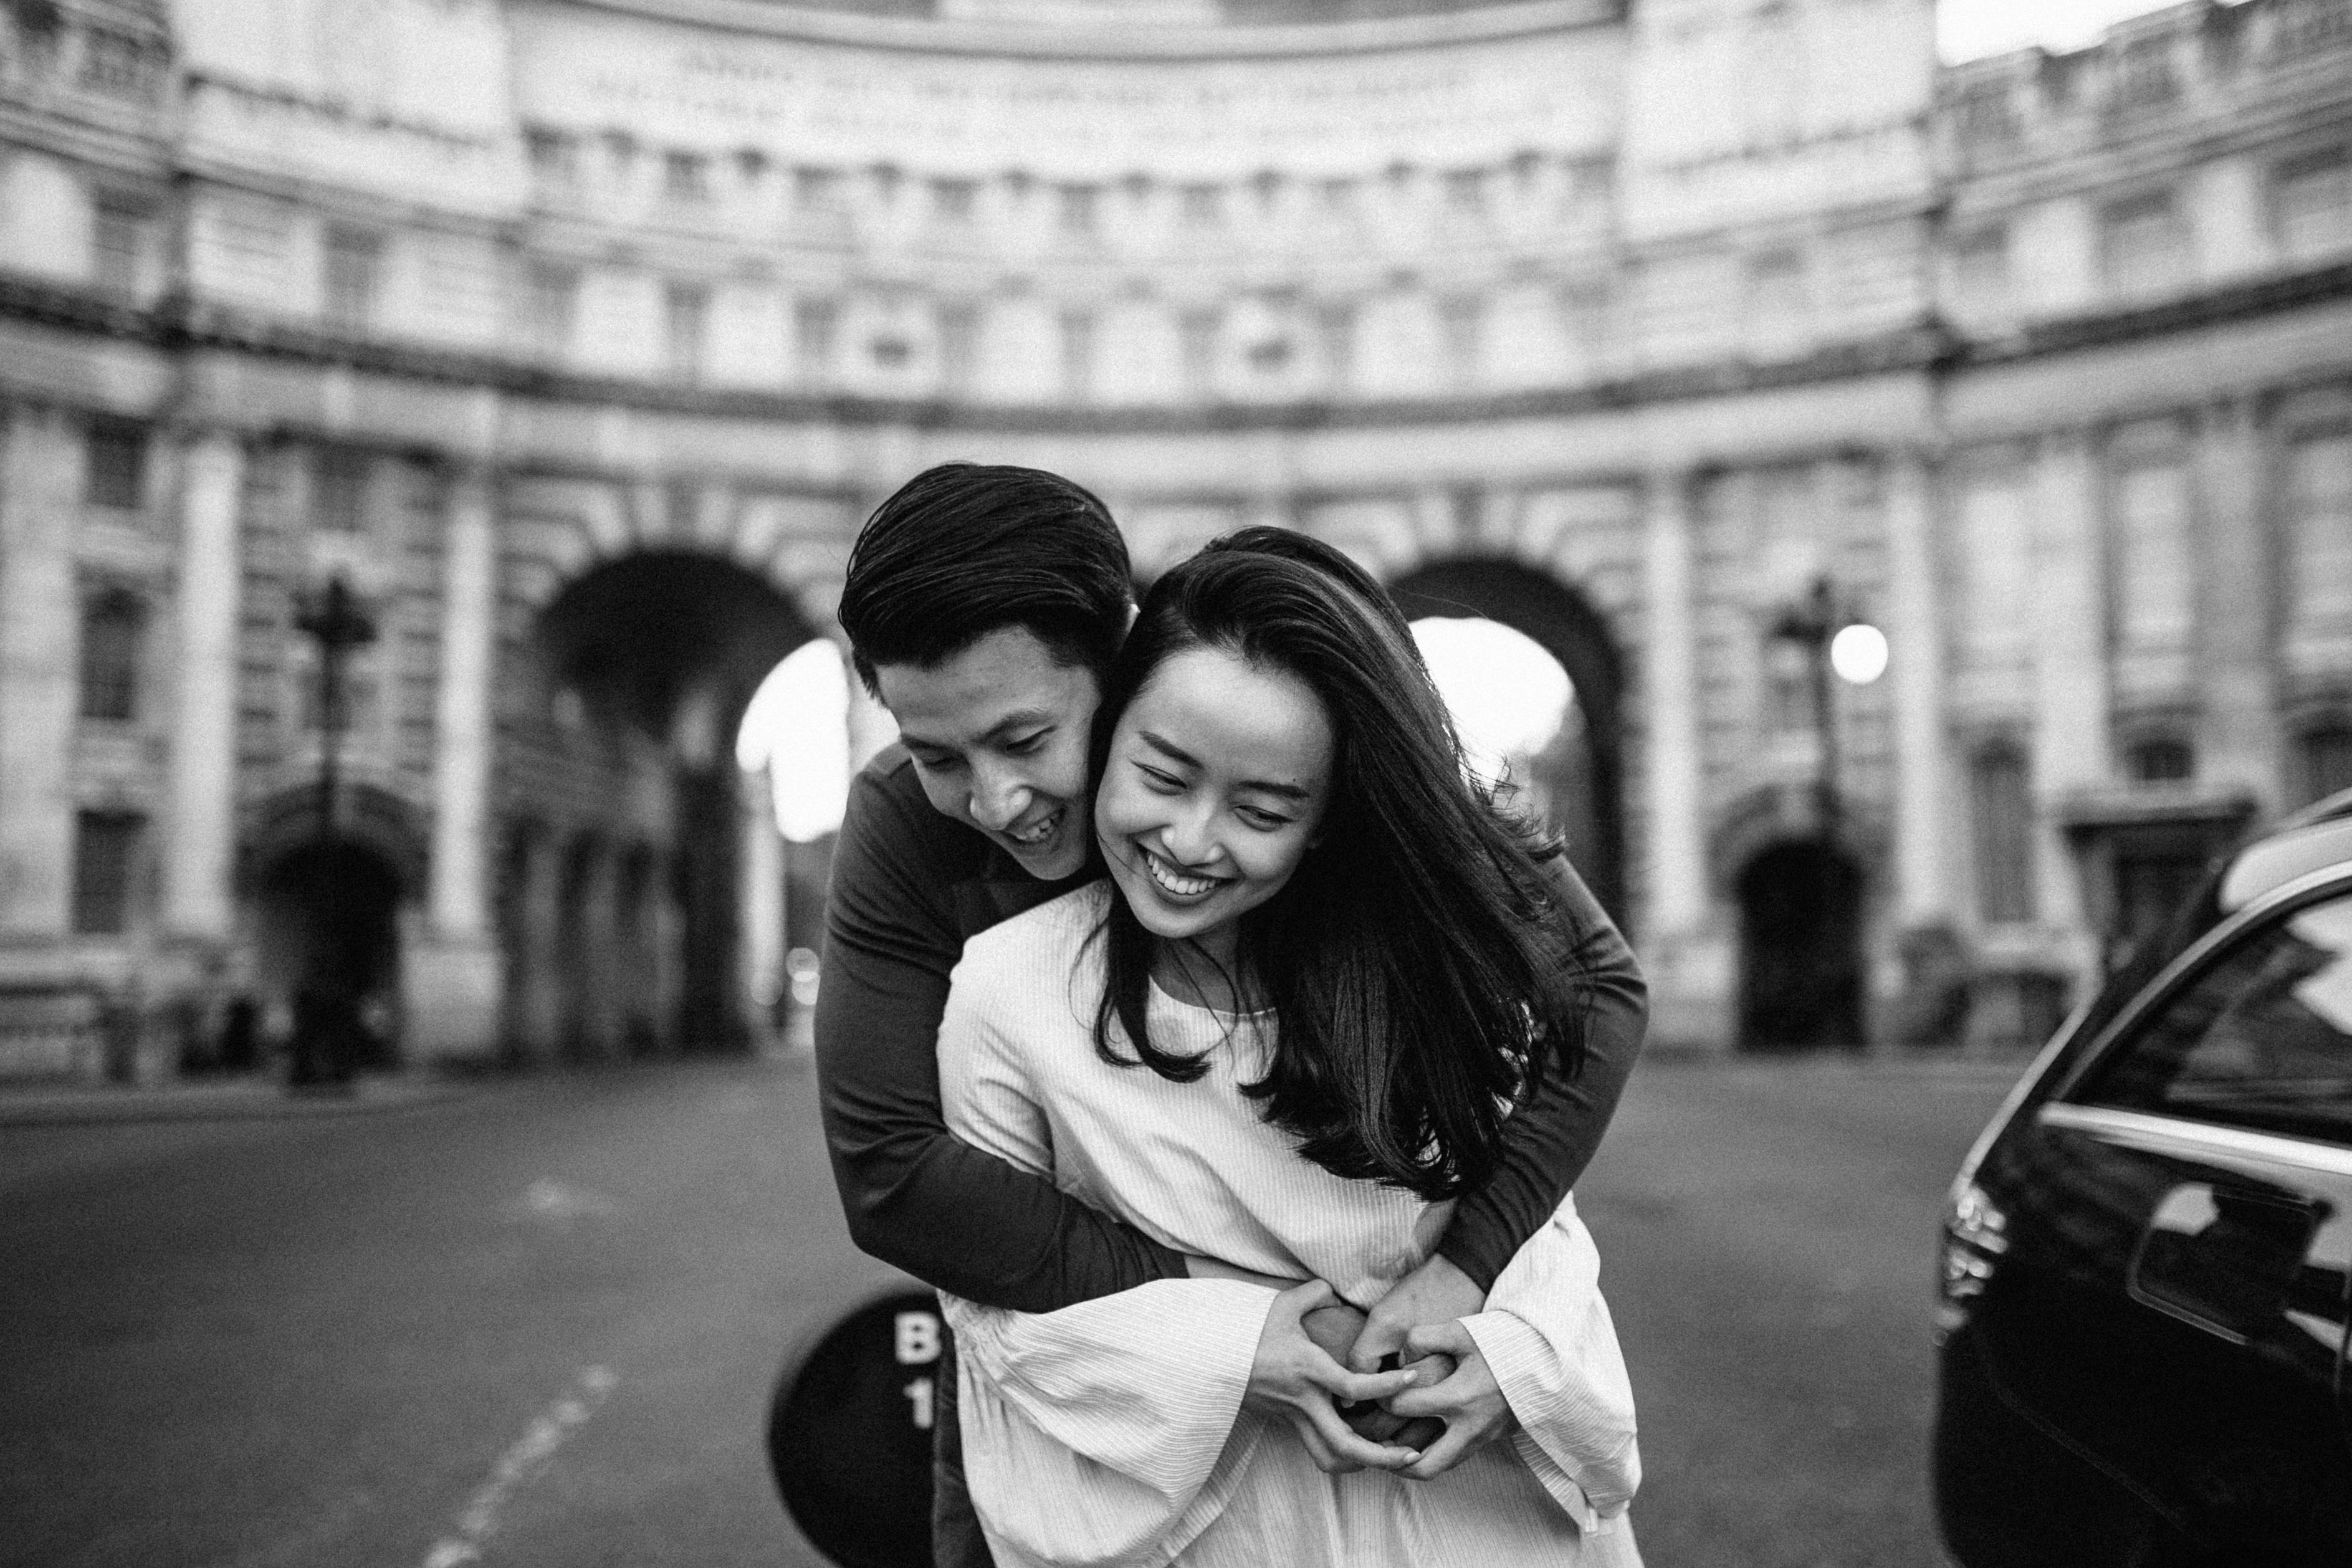 FUN ENGAGEMENT SHOOT IDEAS IN LONDON WESMINSTER SOHO AND SOUTH BANK BIG BEN